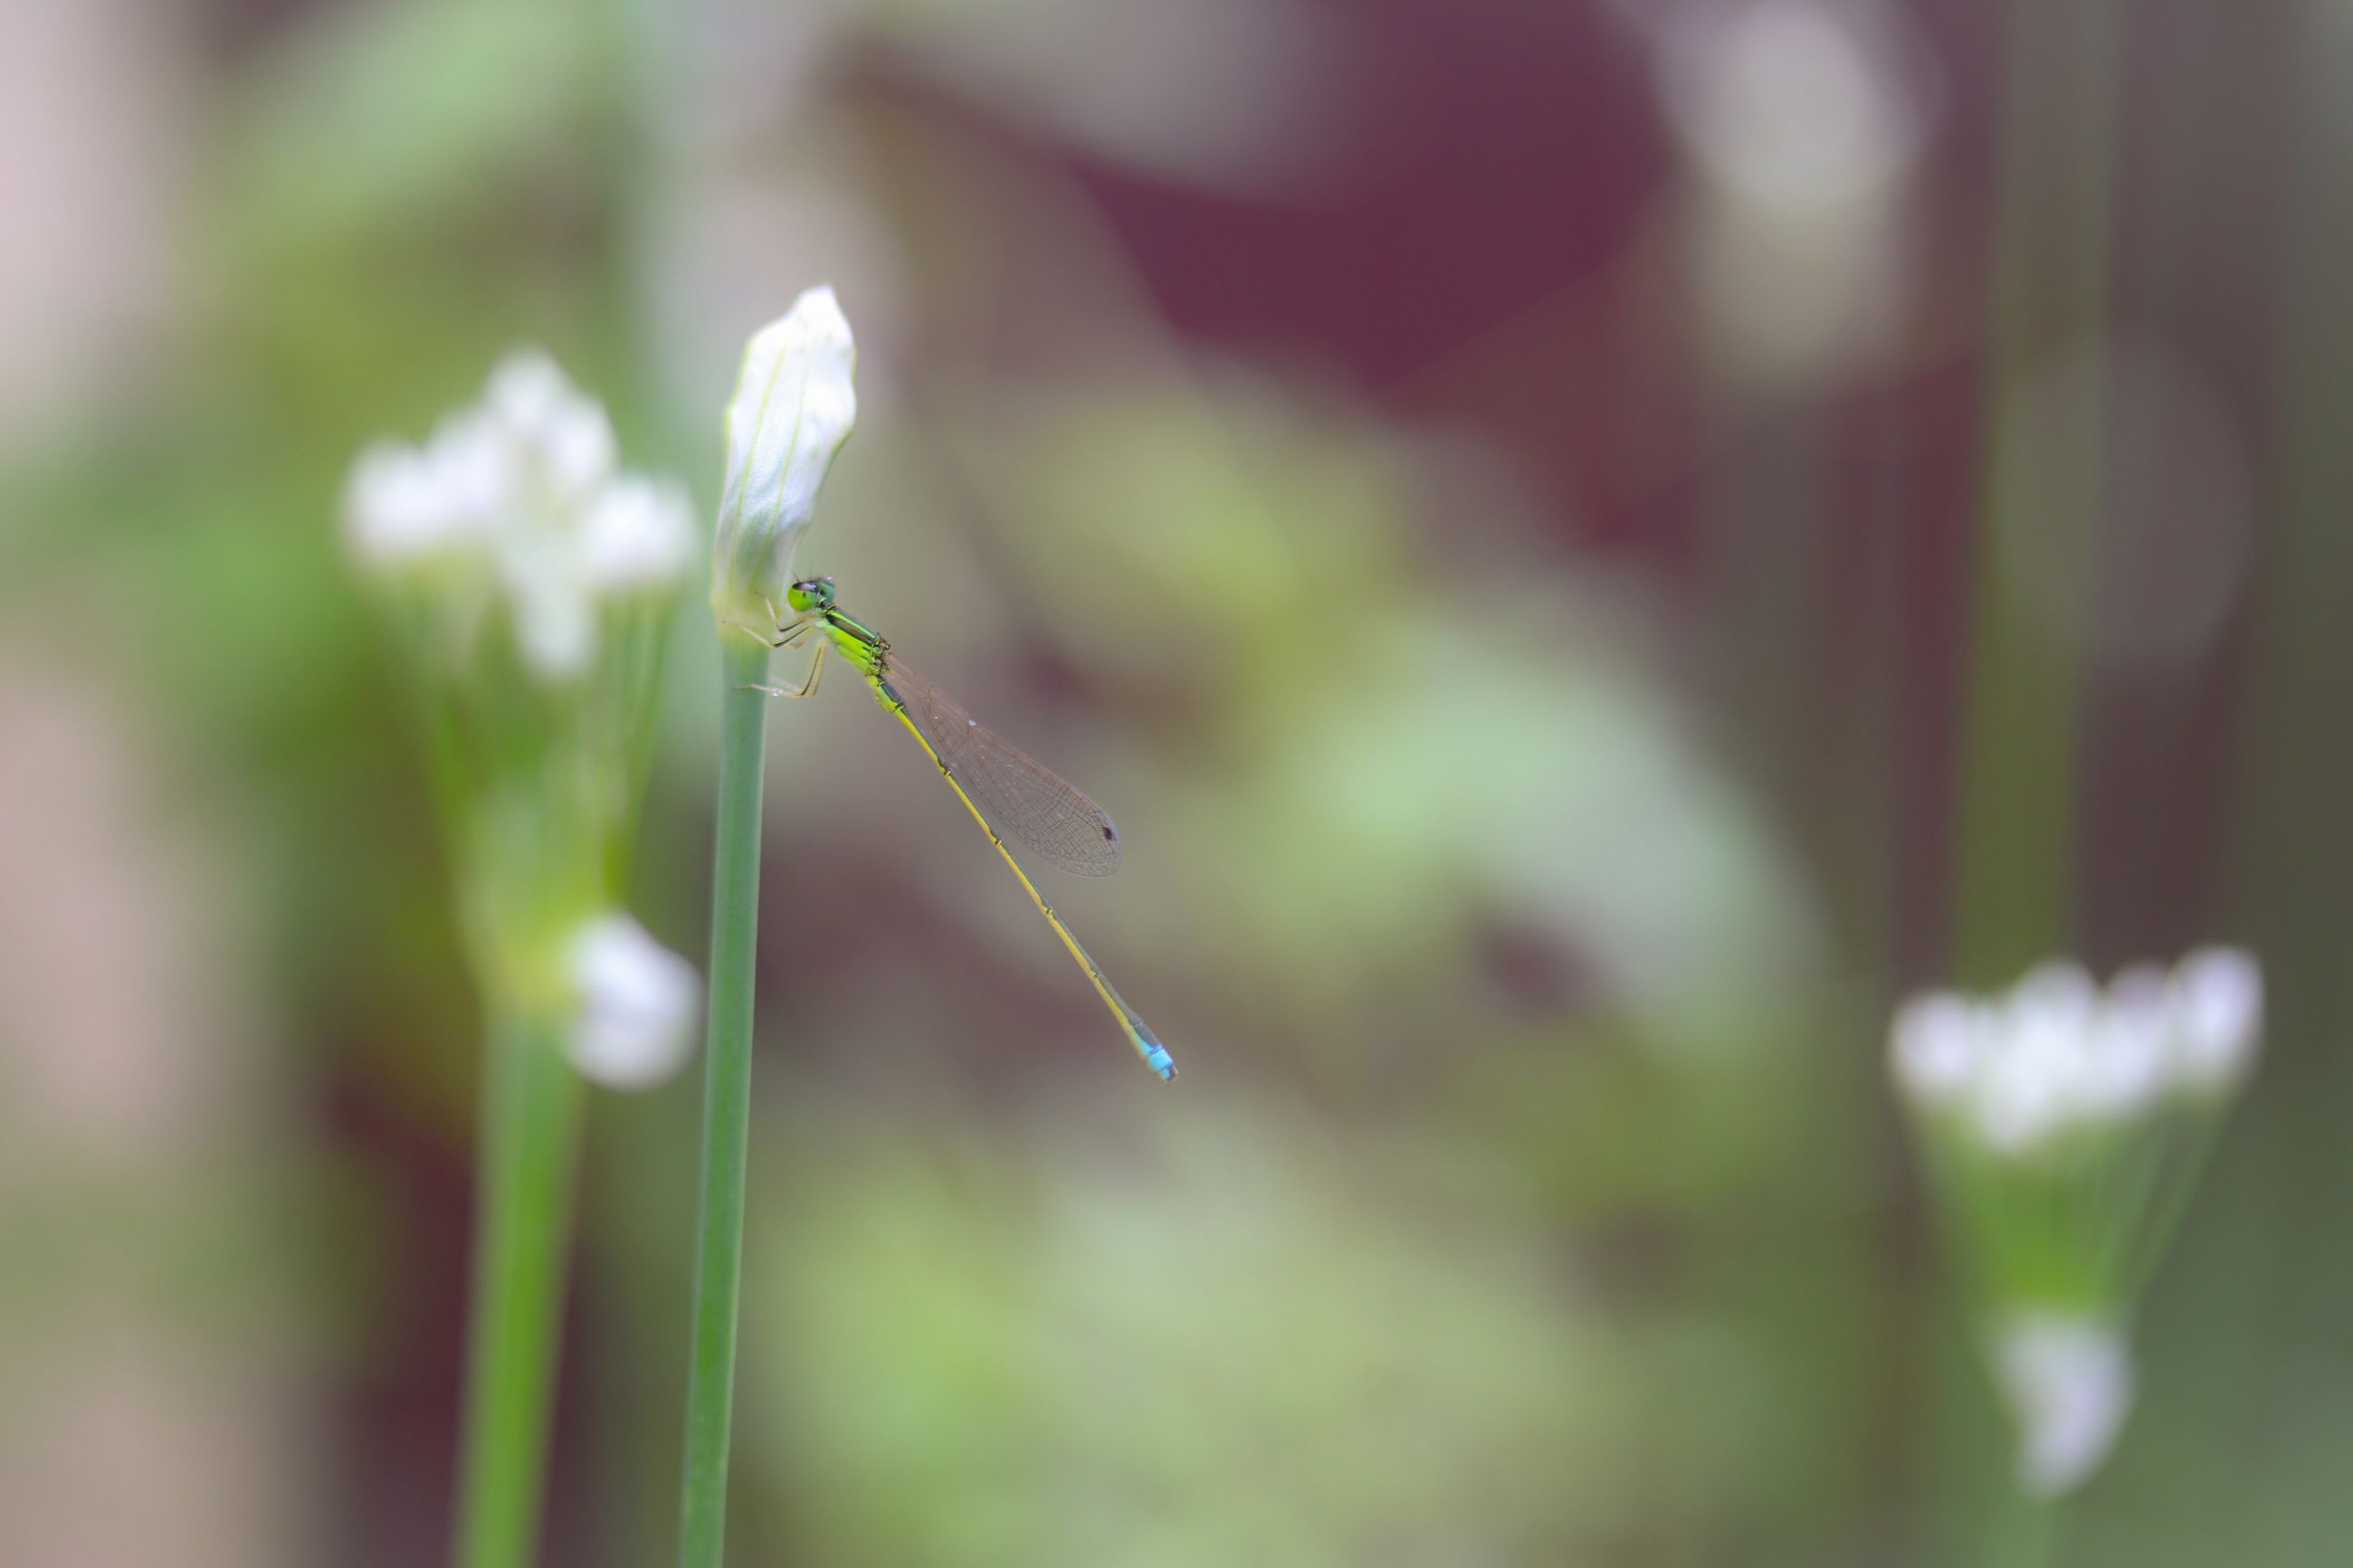 growth, close-up, plant, stem, flower, fragility, focus on foreground, freshness, nature, beauty in nature, selective focus, springtime, botany, day, in bloom, outdoors, tranquility, green color, scenics, no people, blossom, plant life, growing, flower head, uncultivated